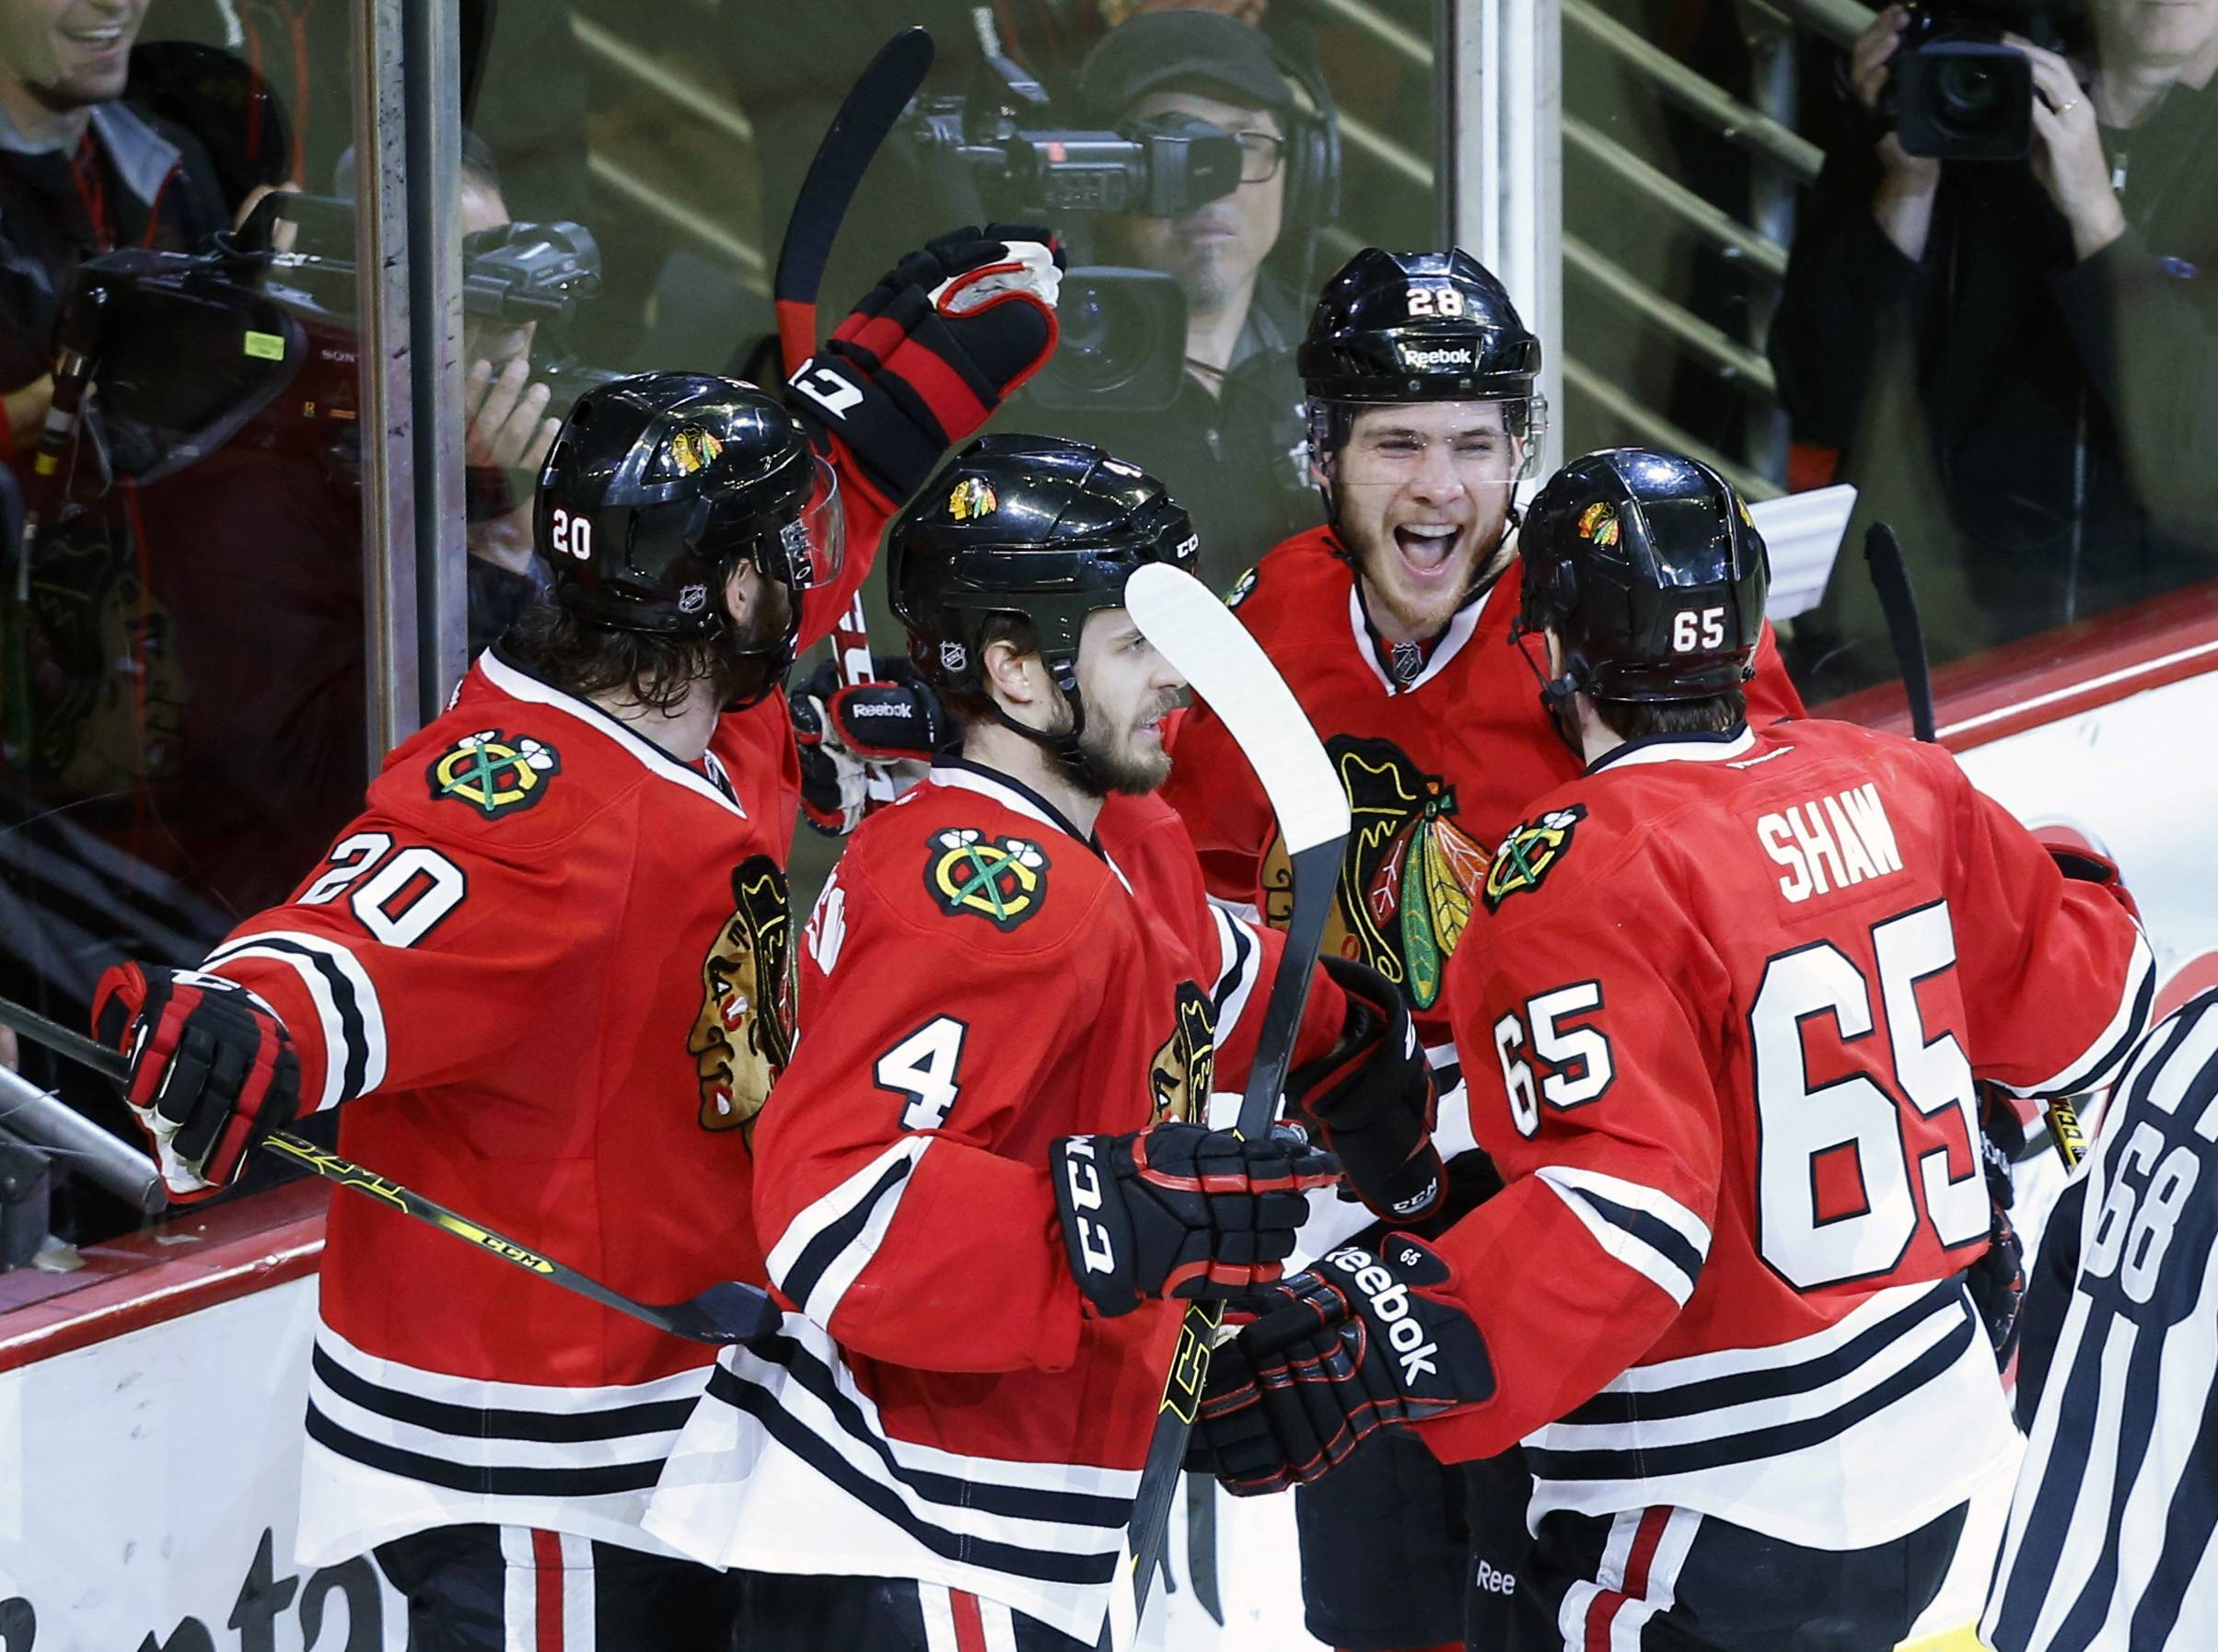 Chicago Blackhawks right wing Ben Smith, second from right, celebrates with his teammates after scoring a goal against Los Angeles Kings during the third period.